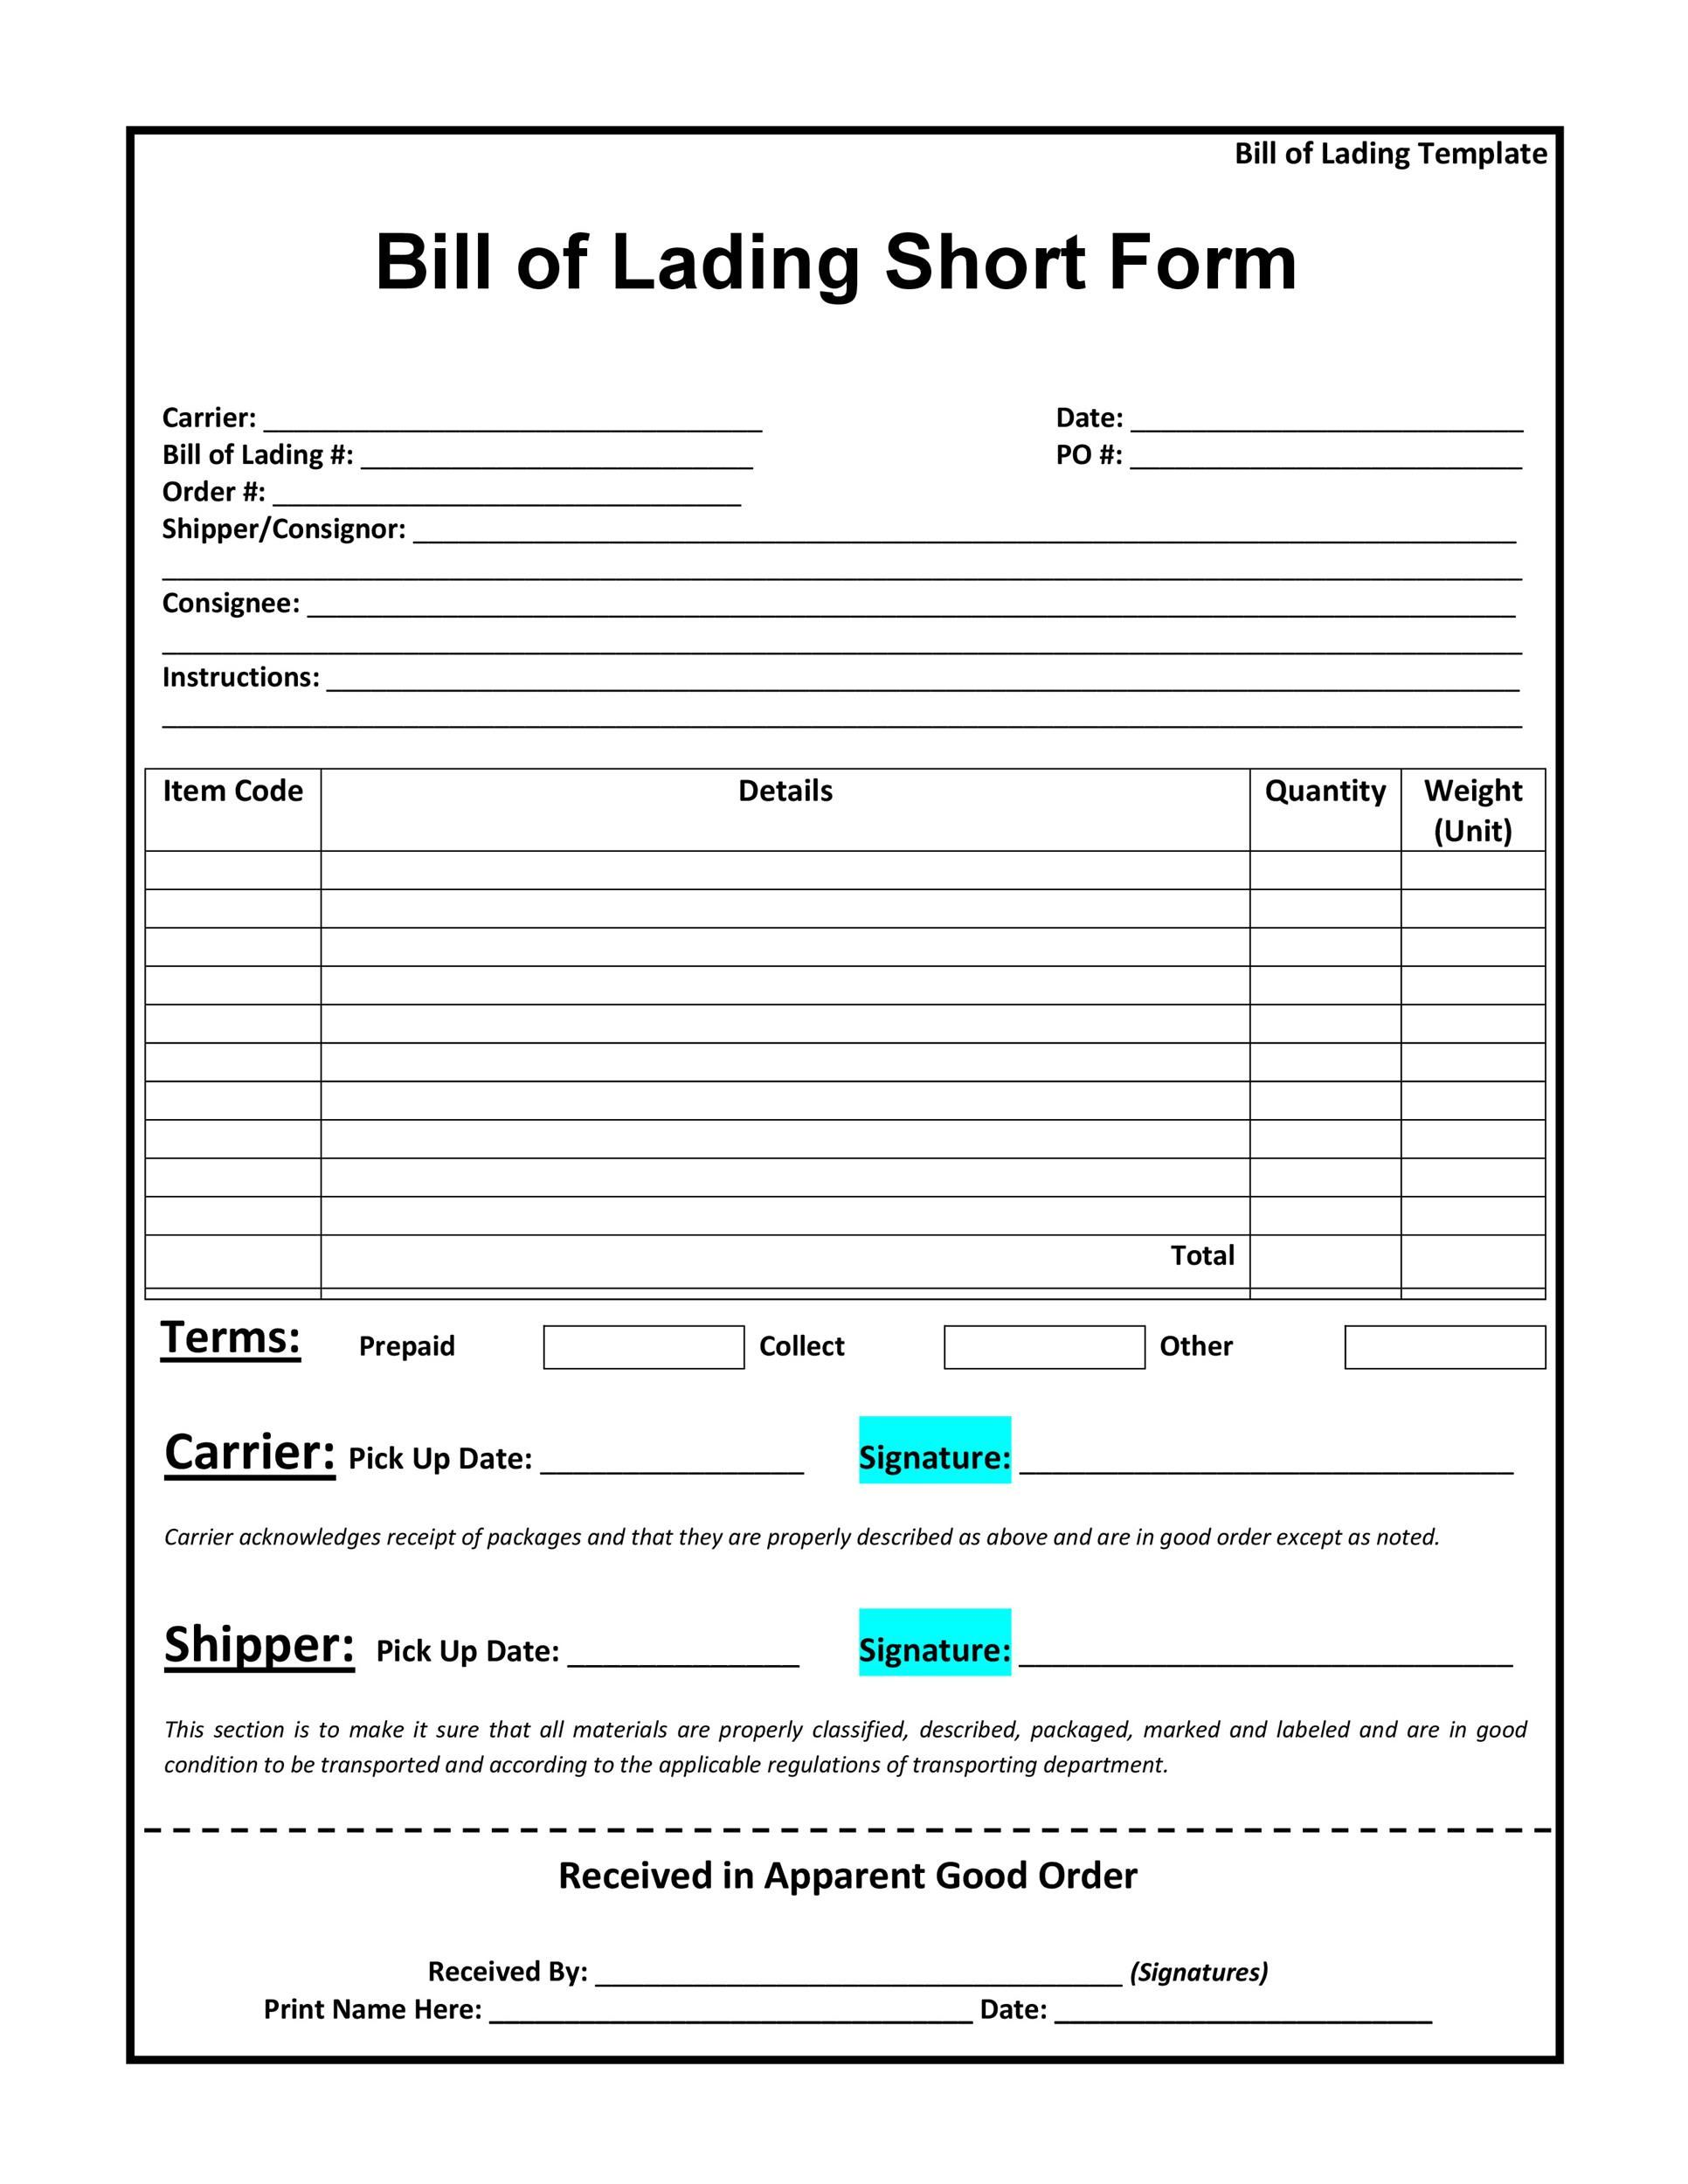 008 Archaicawful Straight Bill Of Lading Template Concept  Form Pdf Word ShortFull